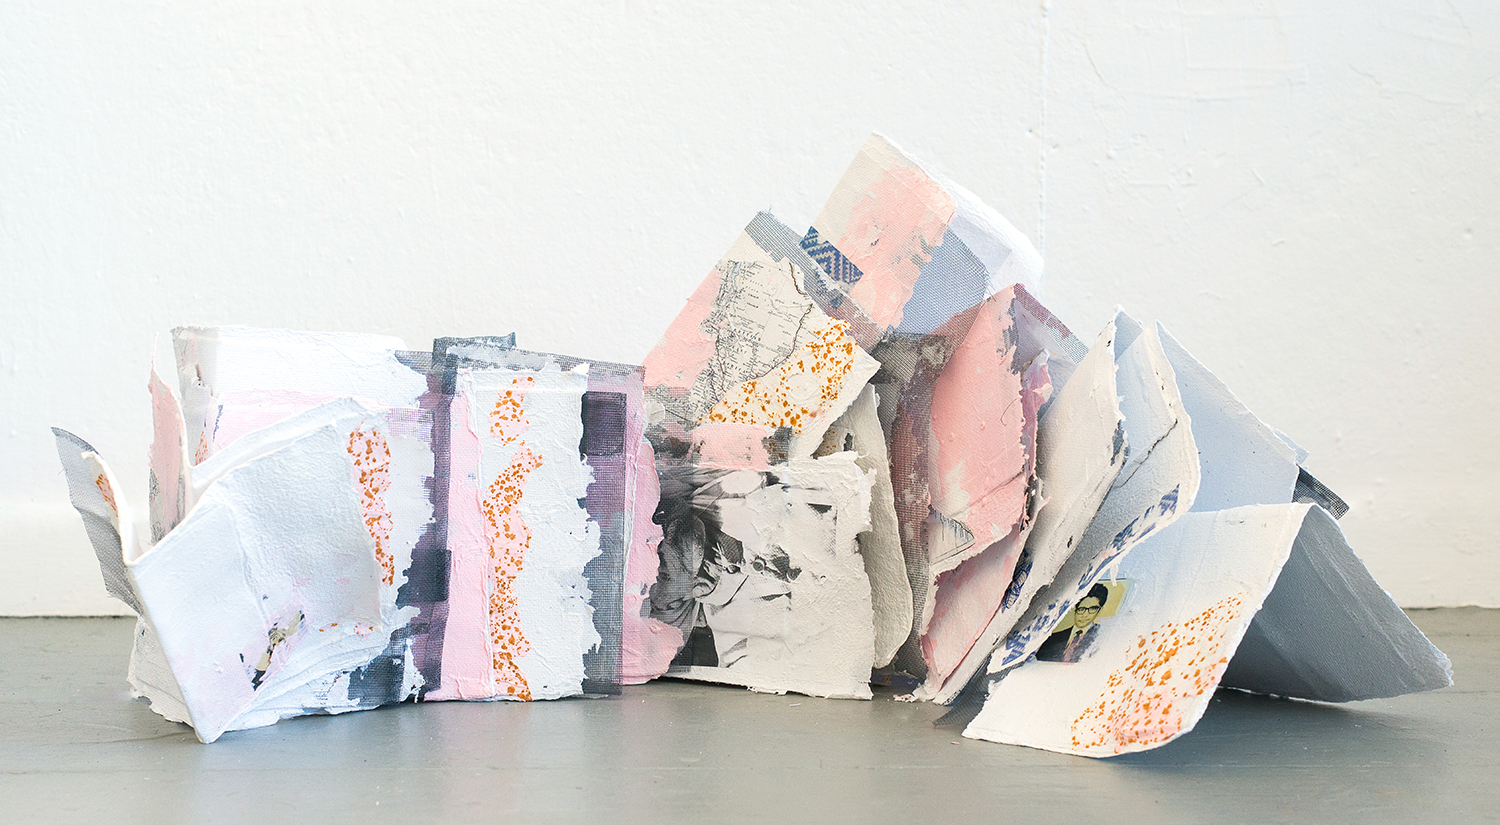 Tahir Carl Karmali.   PAPER:landscape , 2017. Handmade paper pulped from photocopied government-issued identification documents and commercial paper; with aluminum mesh, photocopy collage, rust transfer, and other mixed media collage. Installation dimensions variable. Courtesy the artist. © 2019 the artist.